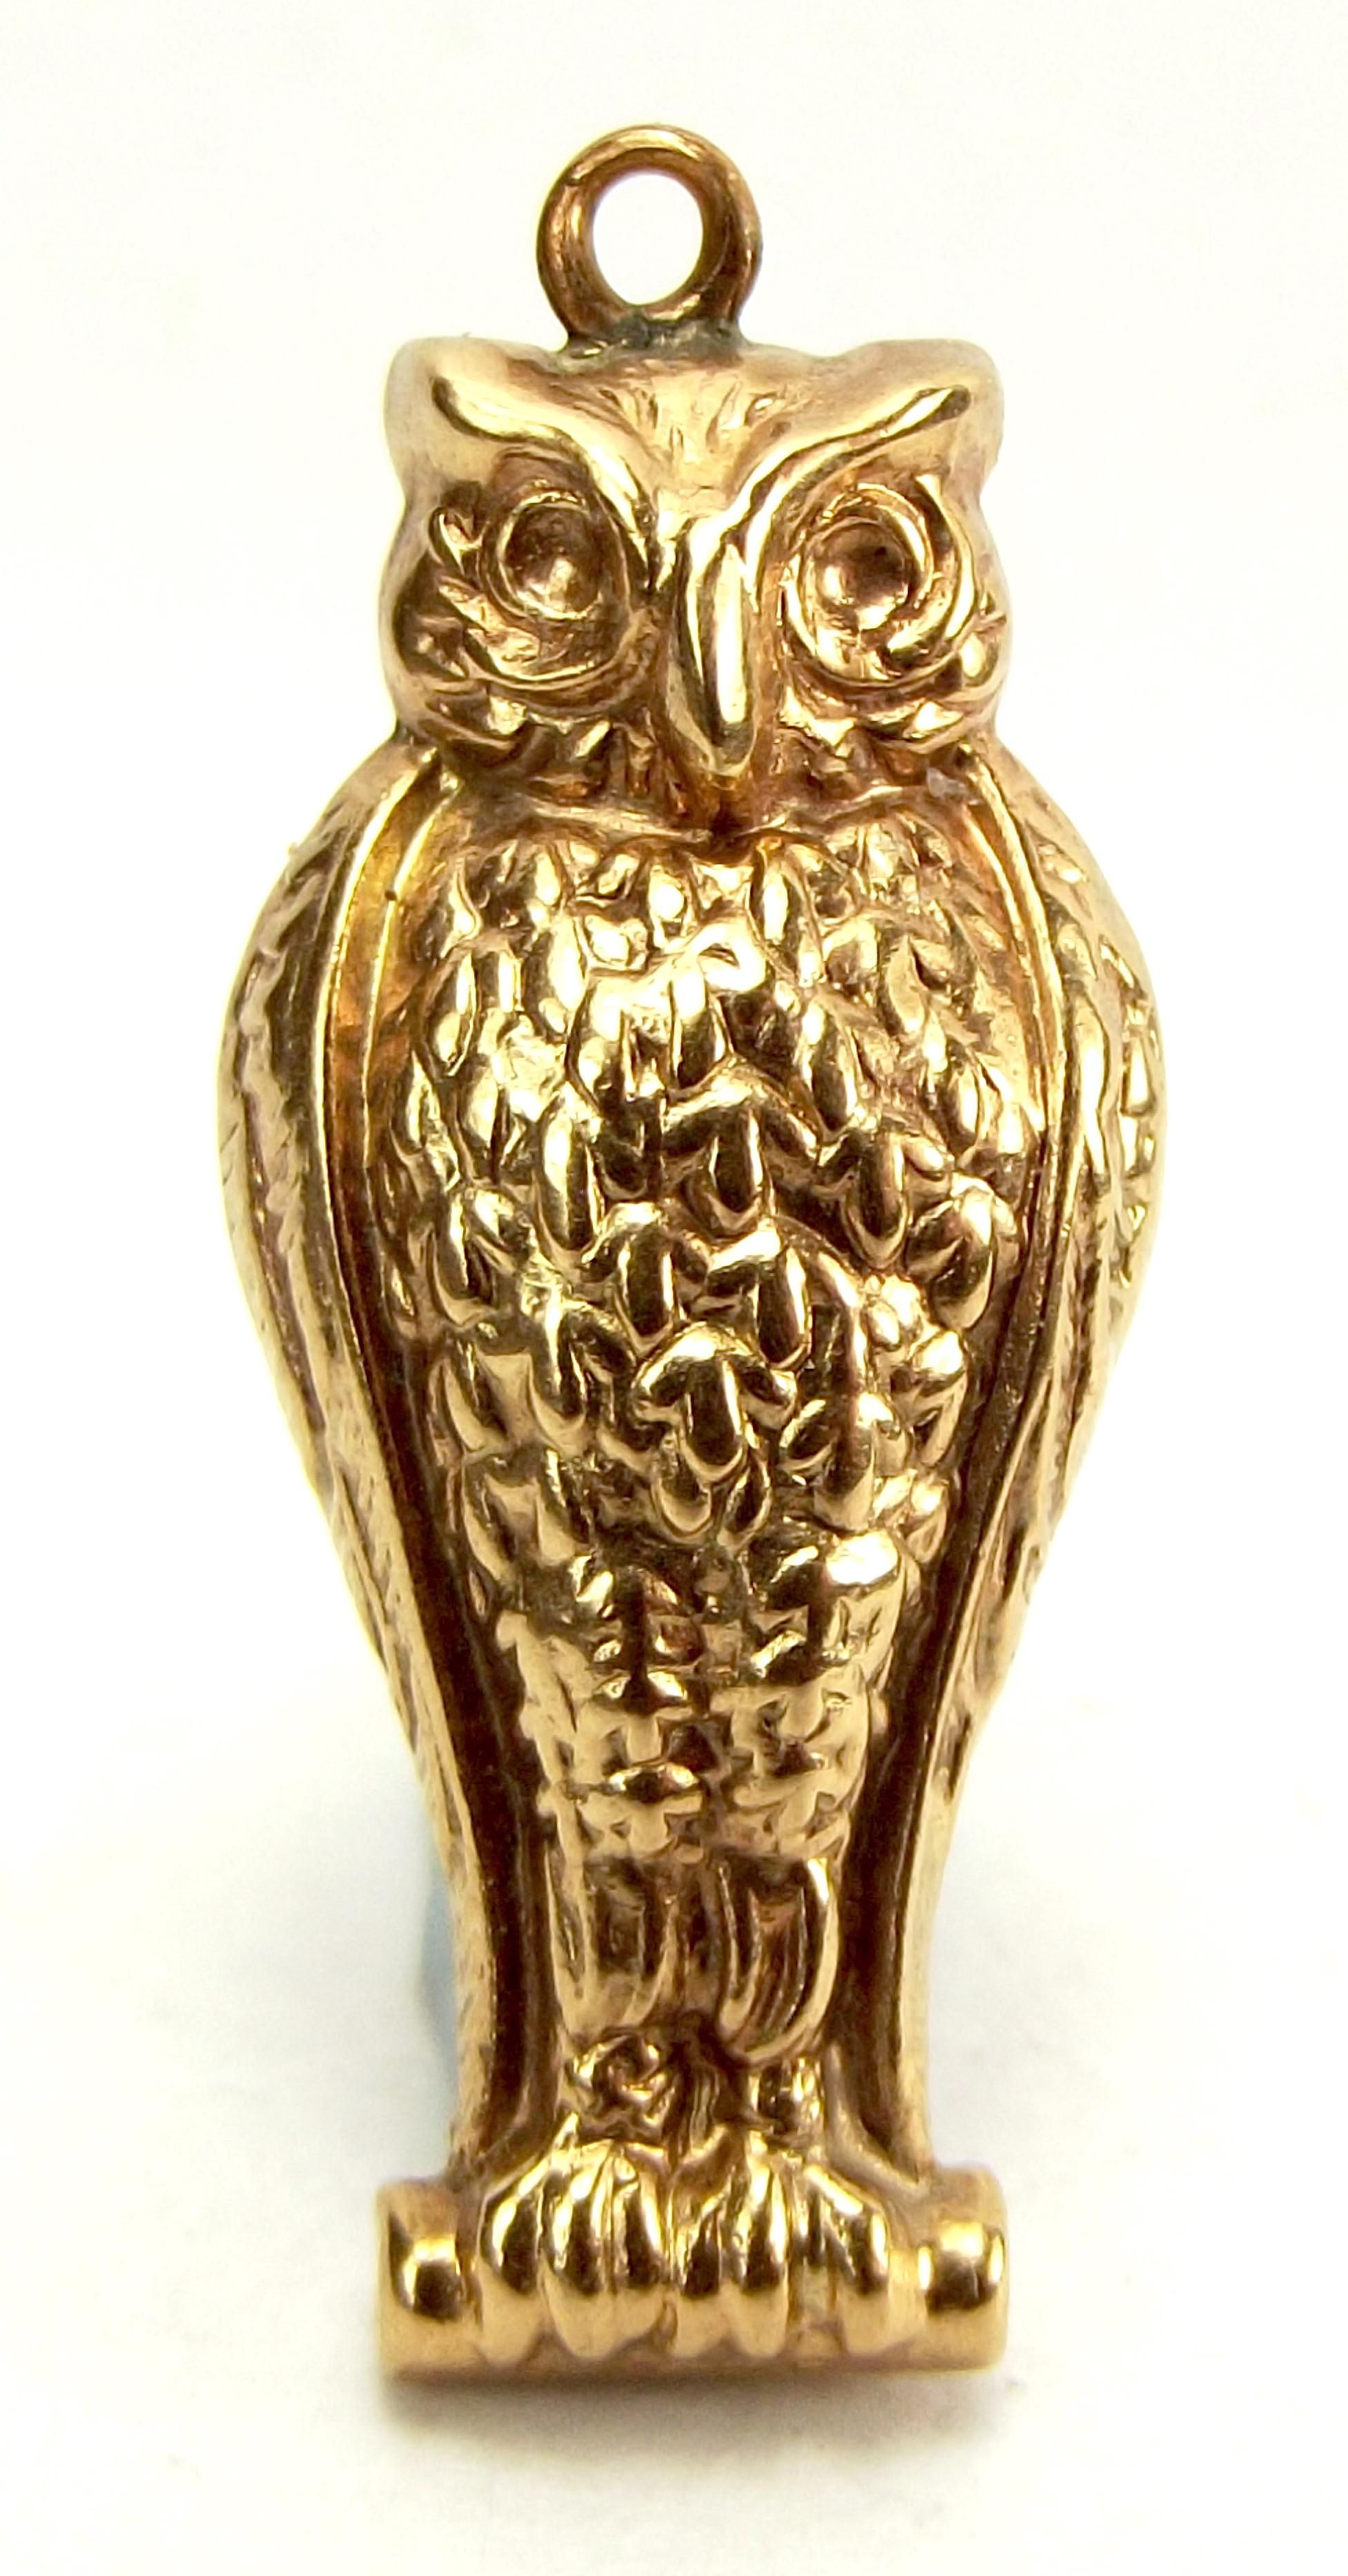 Vintage English 9ct Gold OWL Charm Pendant Hmk Chester 1961 from m4gso on Ruby Lane